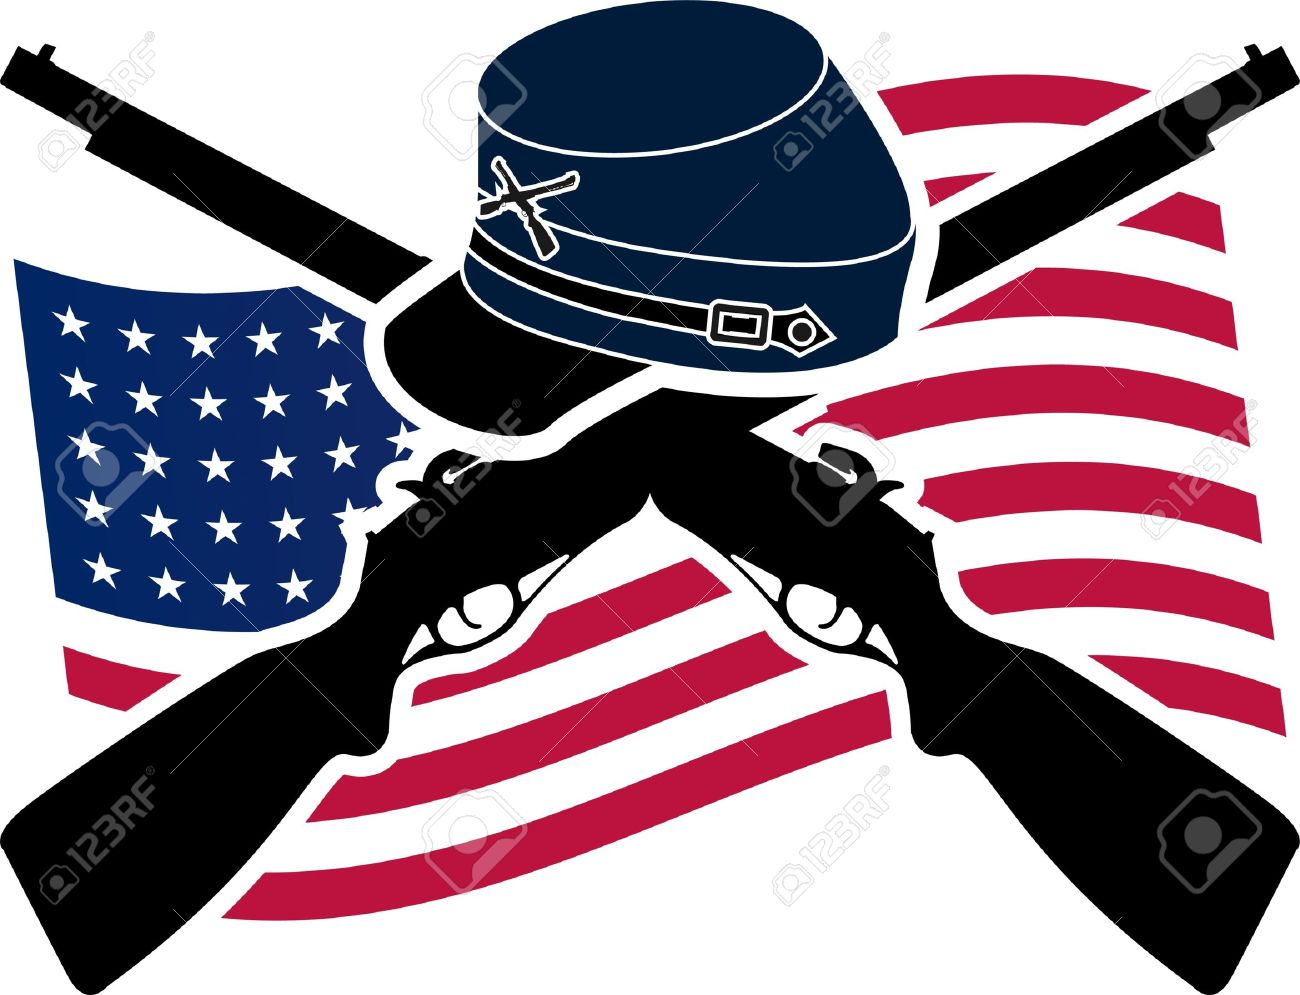 981 Civil War free clipart.